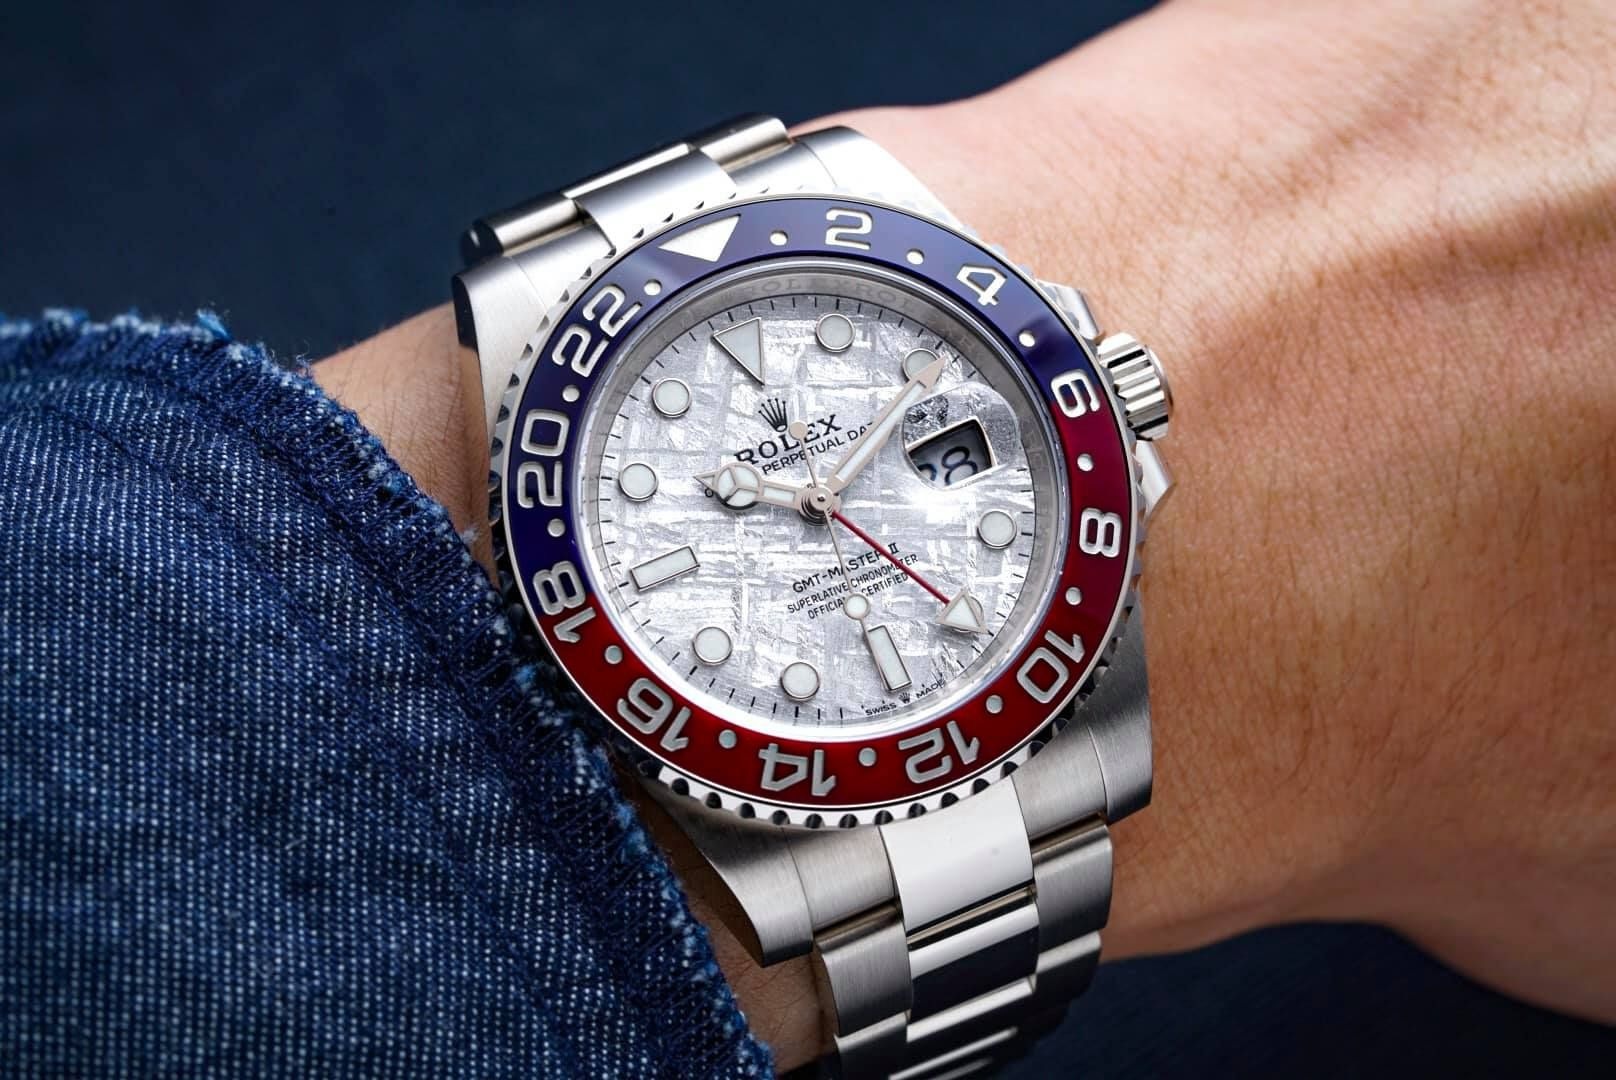 Rolex [NEW] GMT-Master II 126719BLRO Meteorite Dial Watch | Luxury watches for men, Watches for men, Rolex gmt master ii